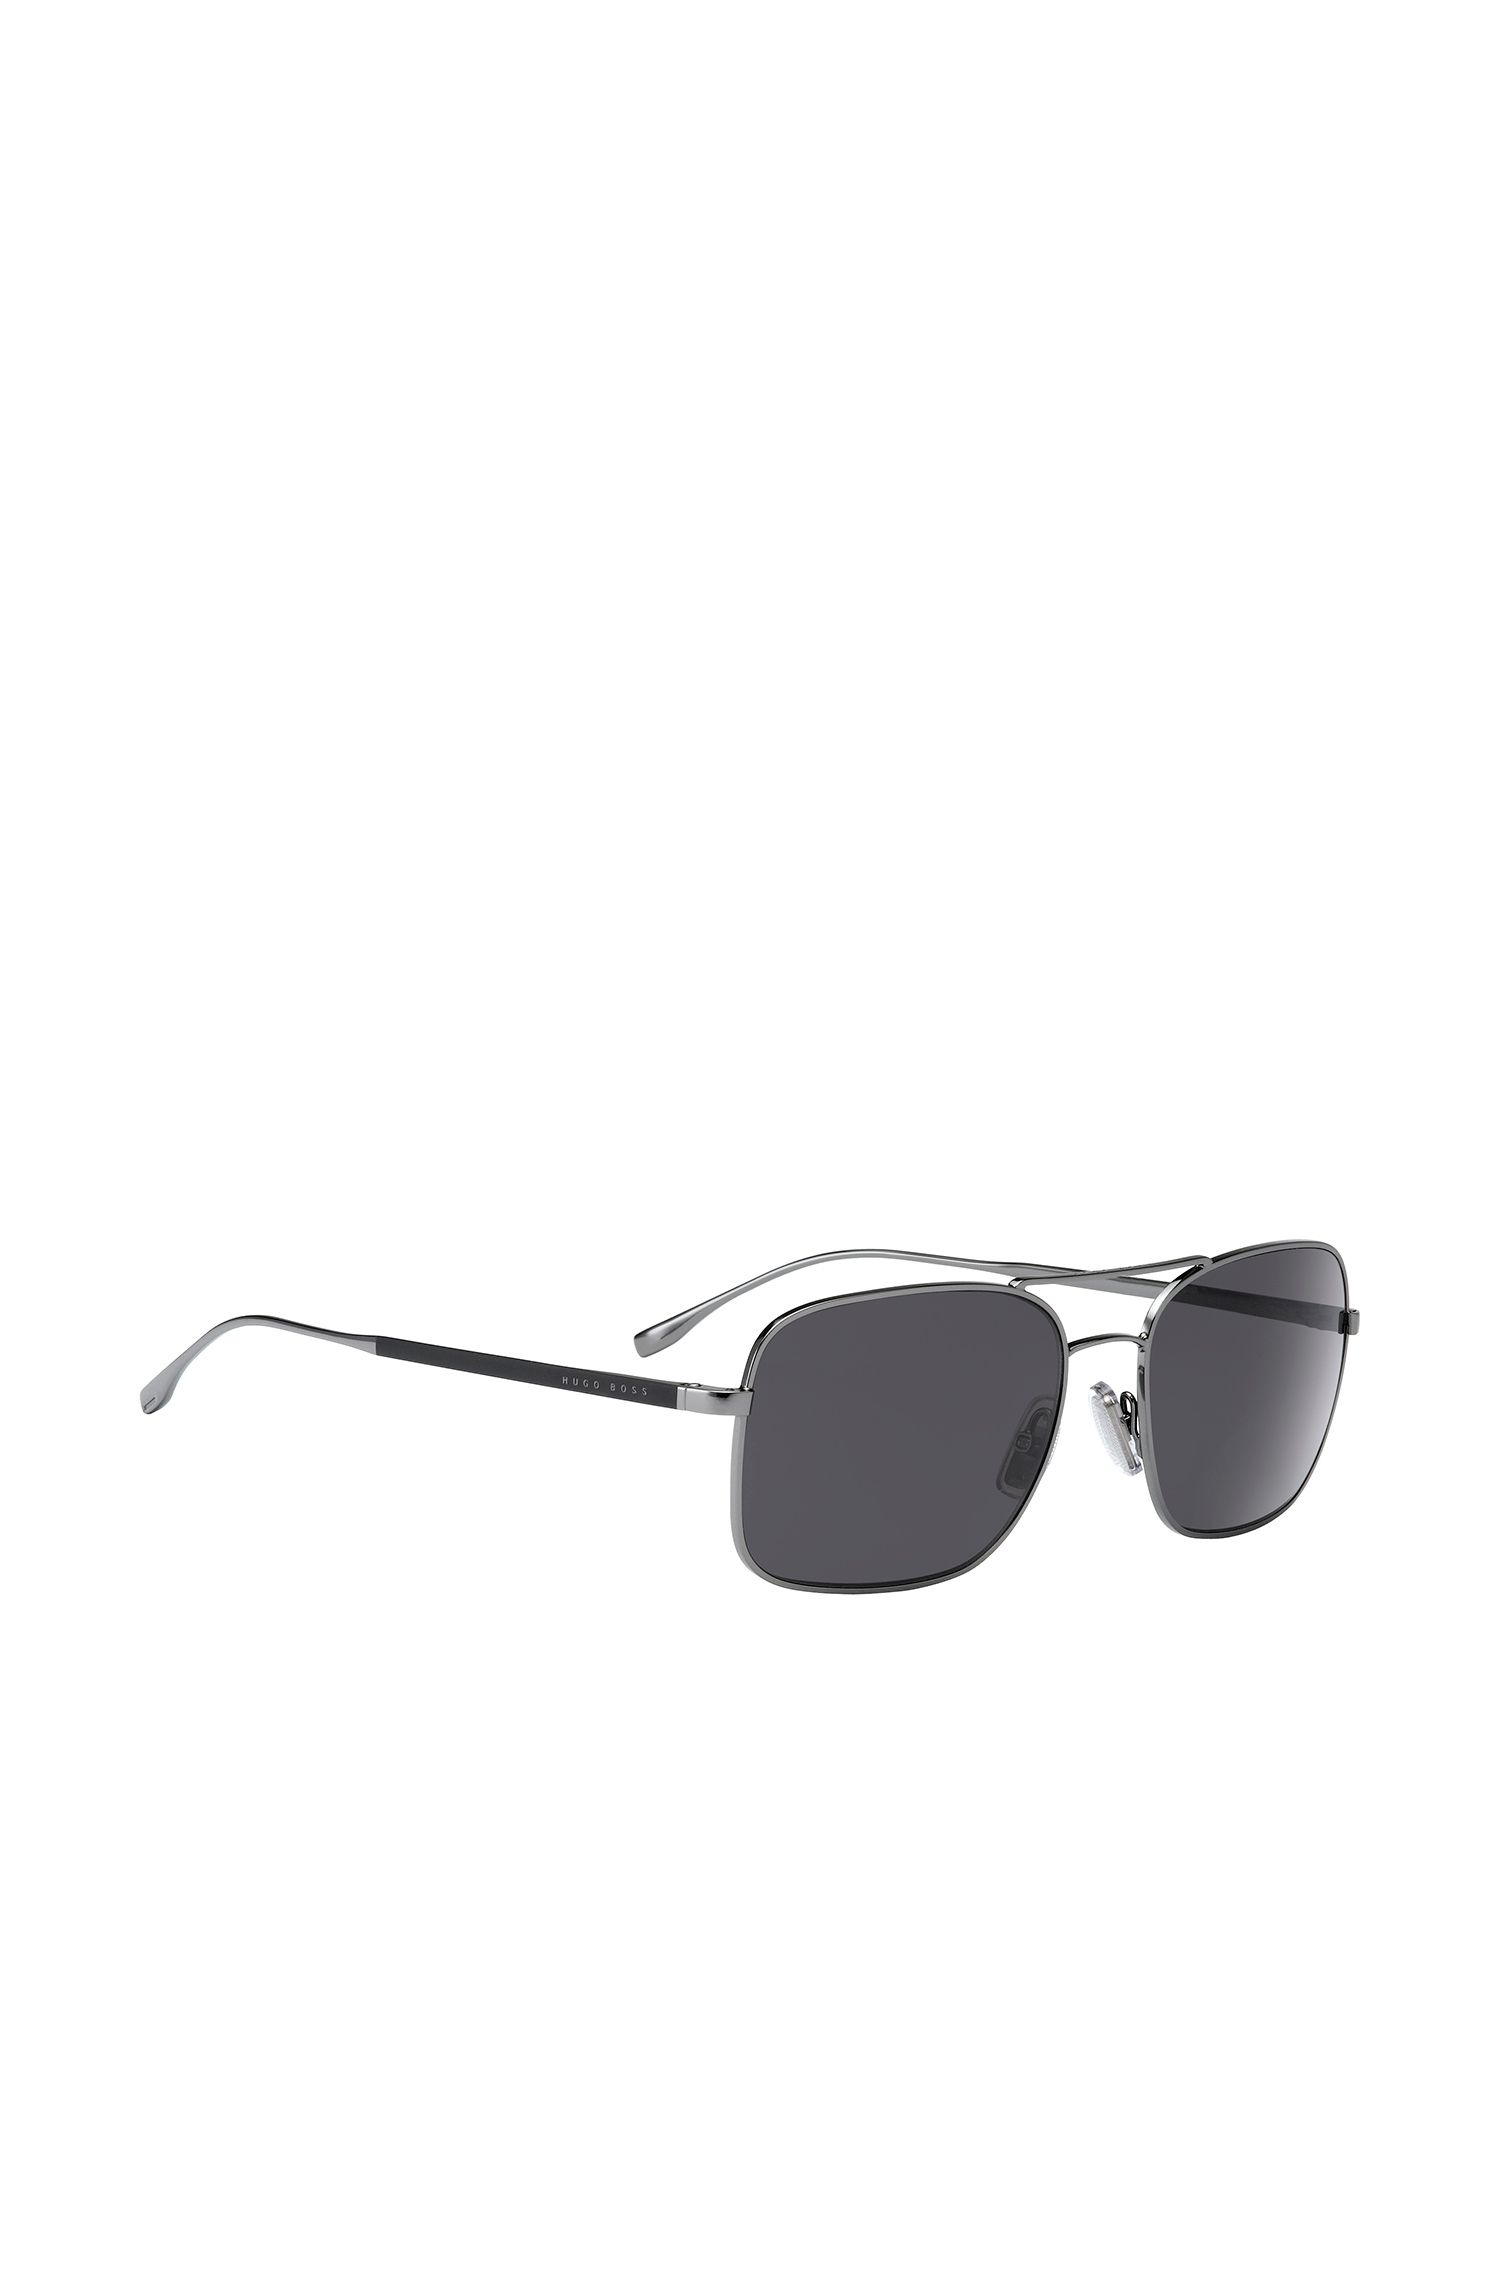 'BOSS 0781' | Gray Lens Caravan Sunglasses